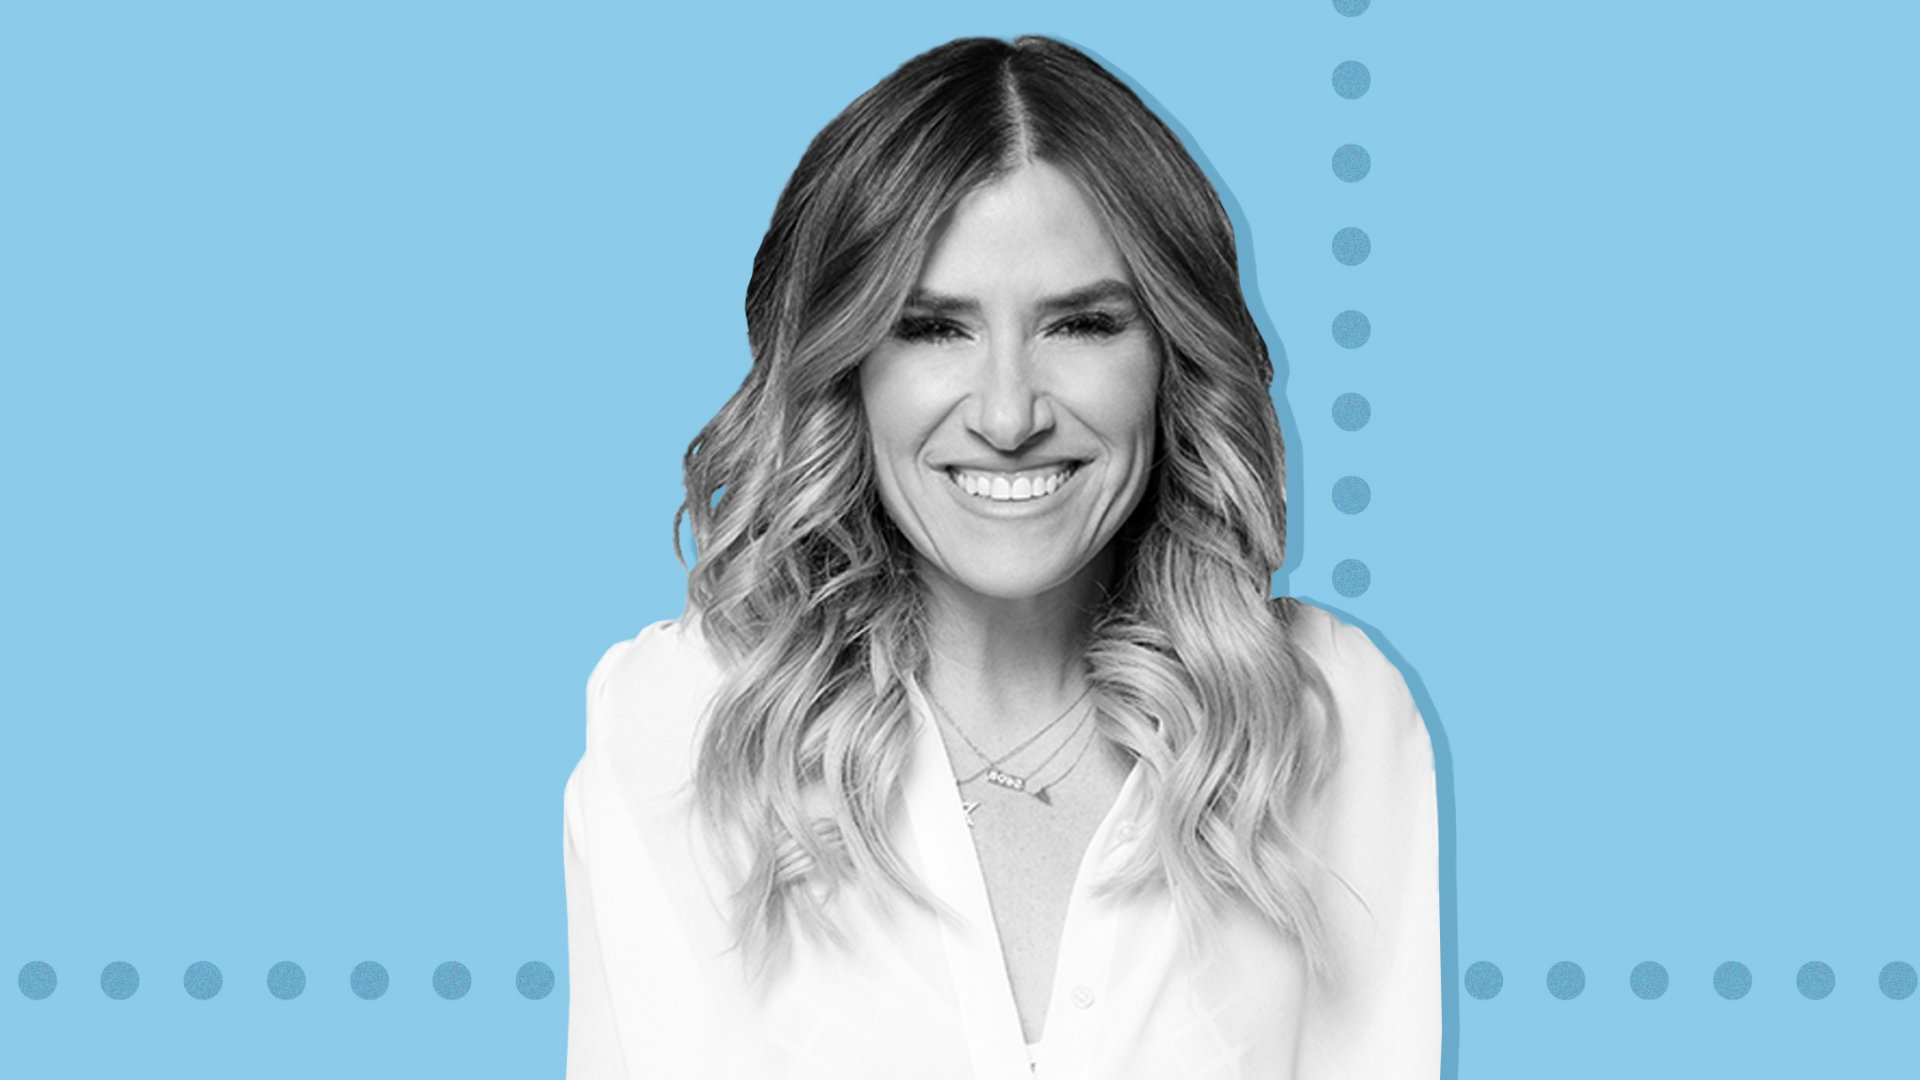 Watch: Drybar's Alli Webb on Building Brands to Surprise and Delight Customers